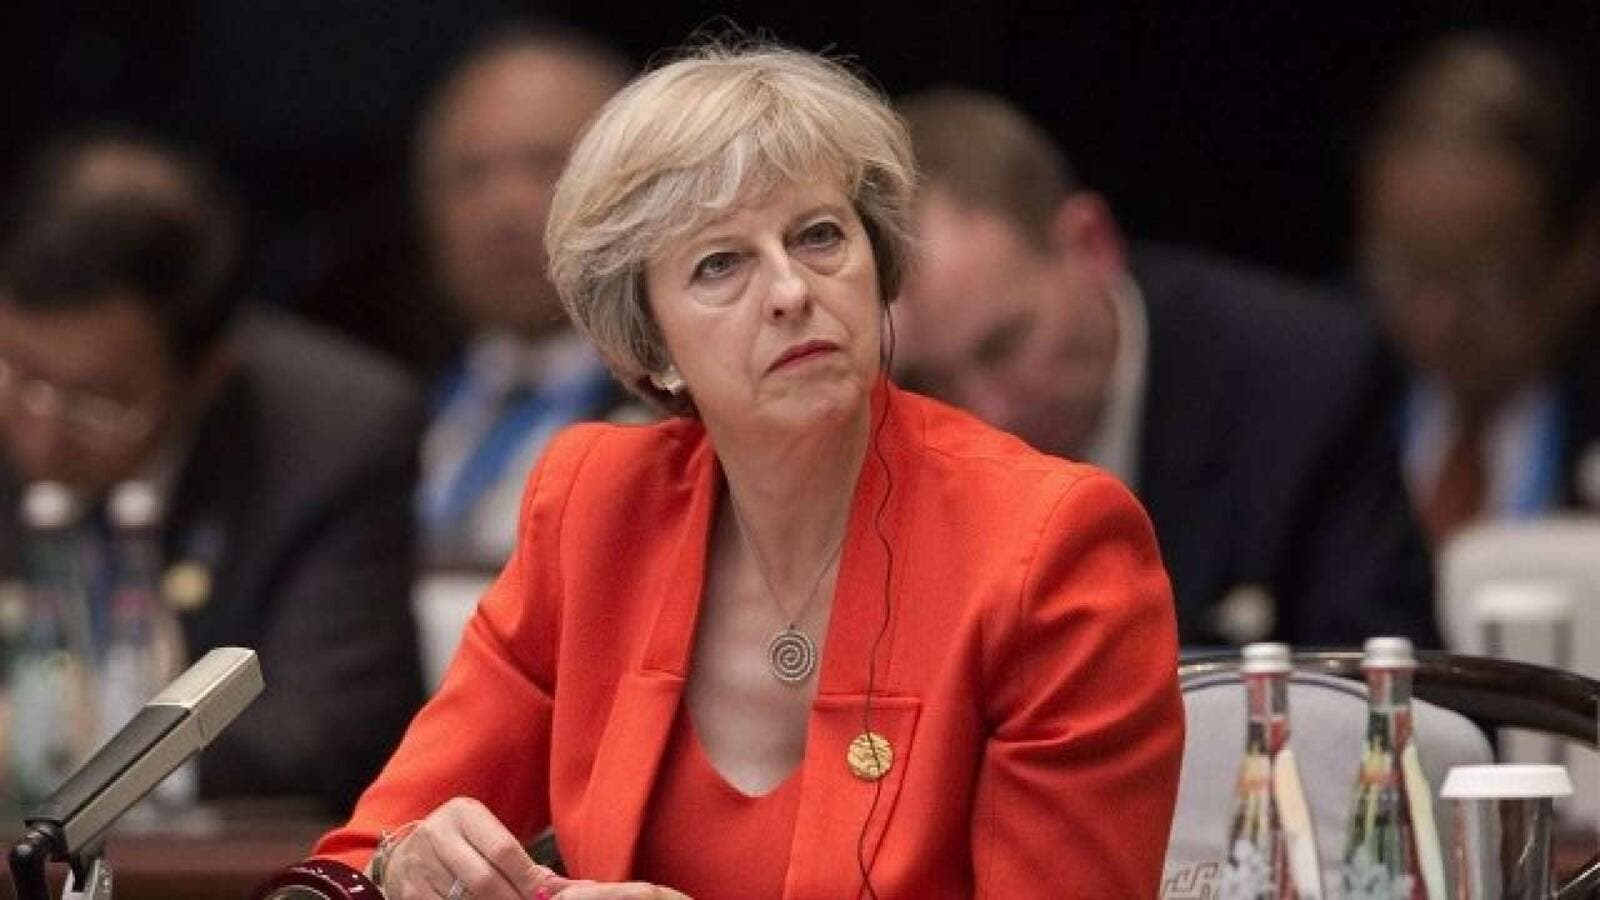 Britain's Prime Minister Theresa May. (AFP /File Photo)